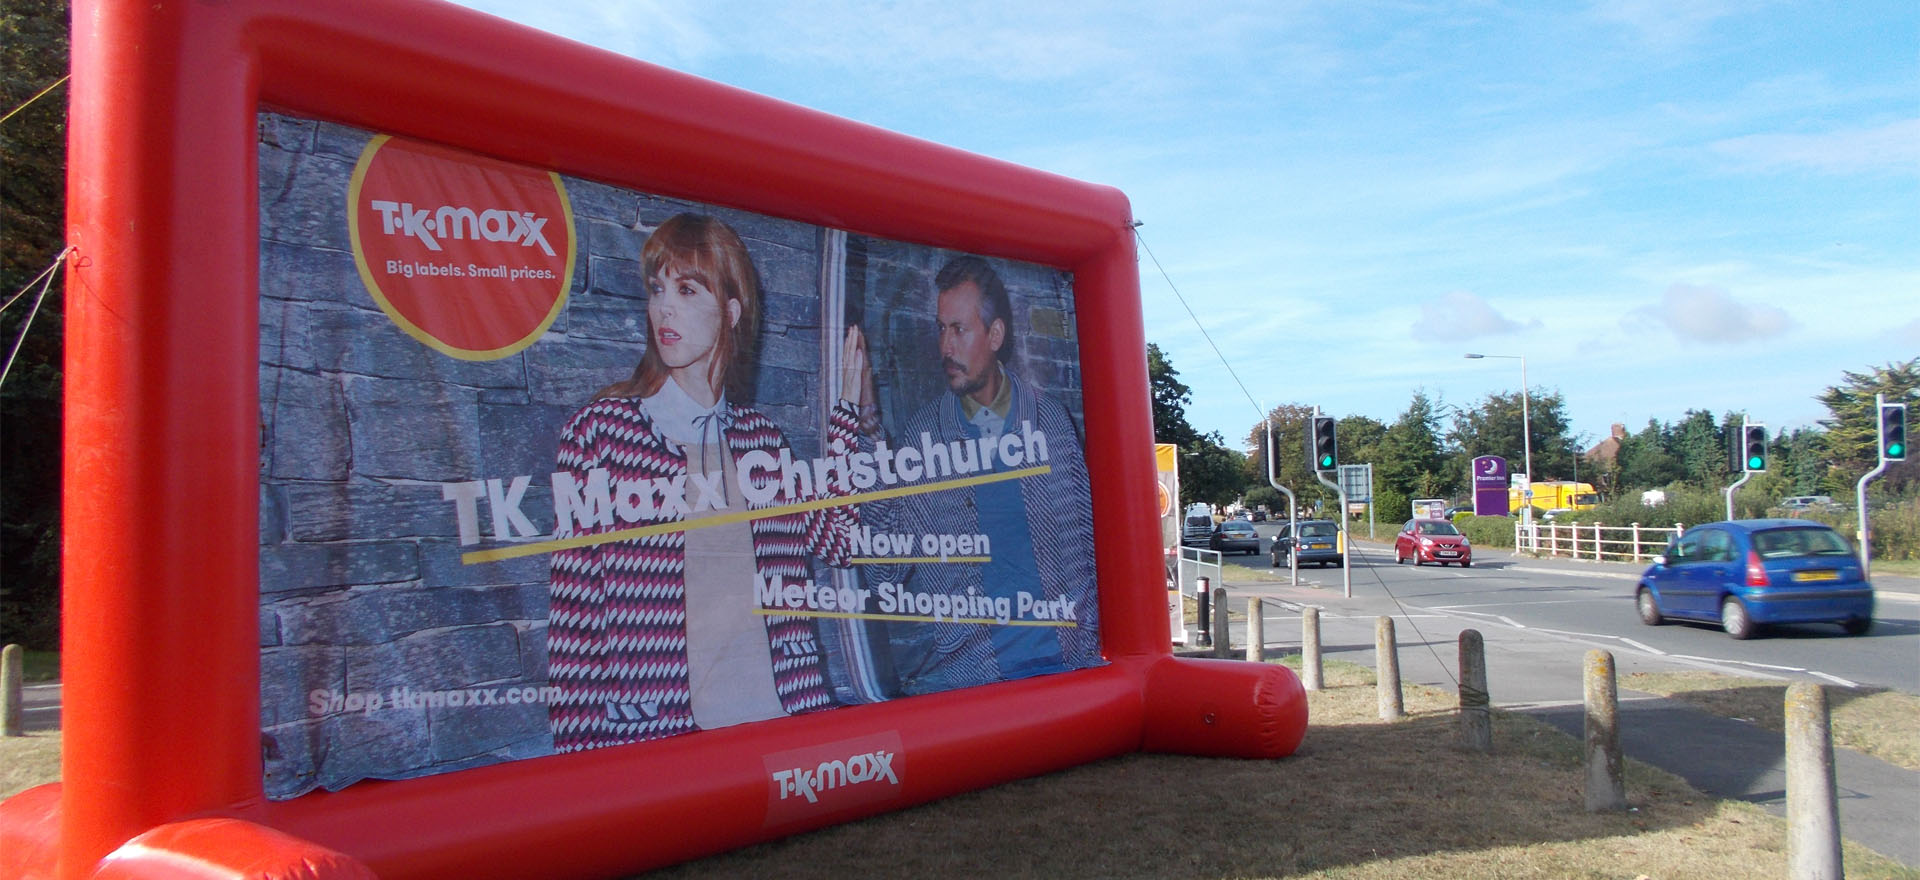 TK Maxx inflatable advertising billboard in Christchurch